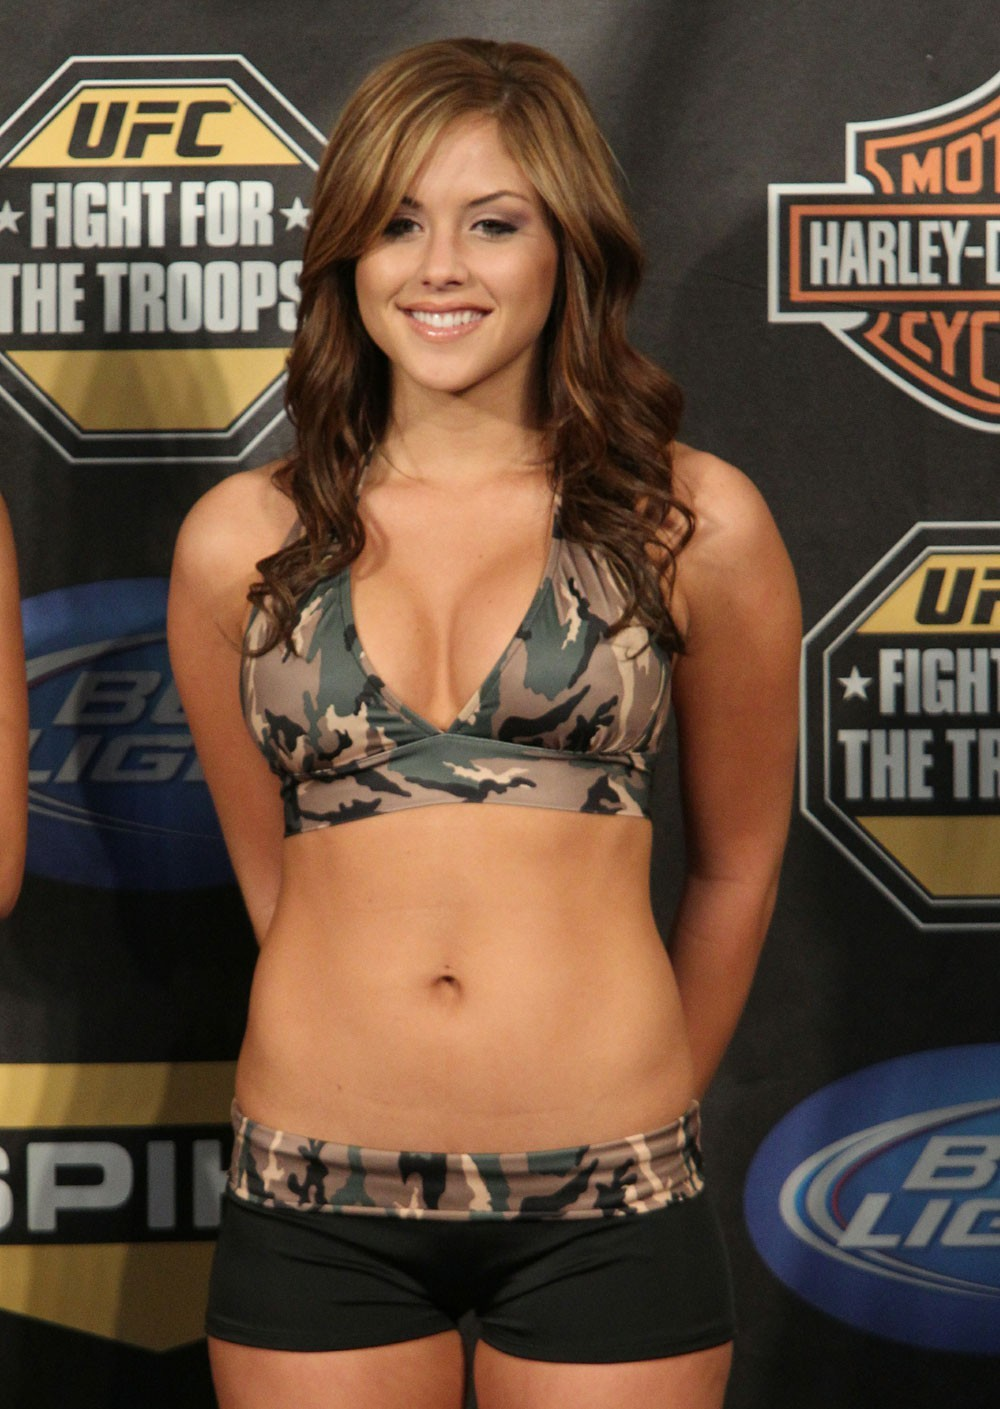 brunettes boobs cleavage ufc HD Wallpaper